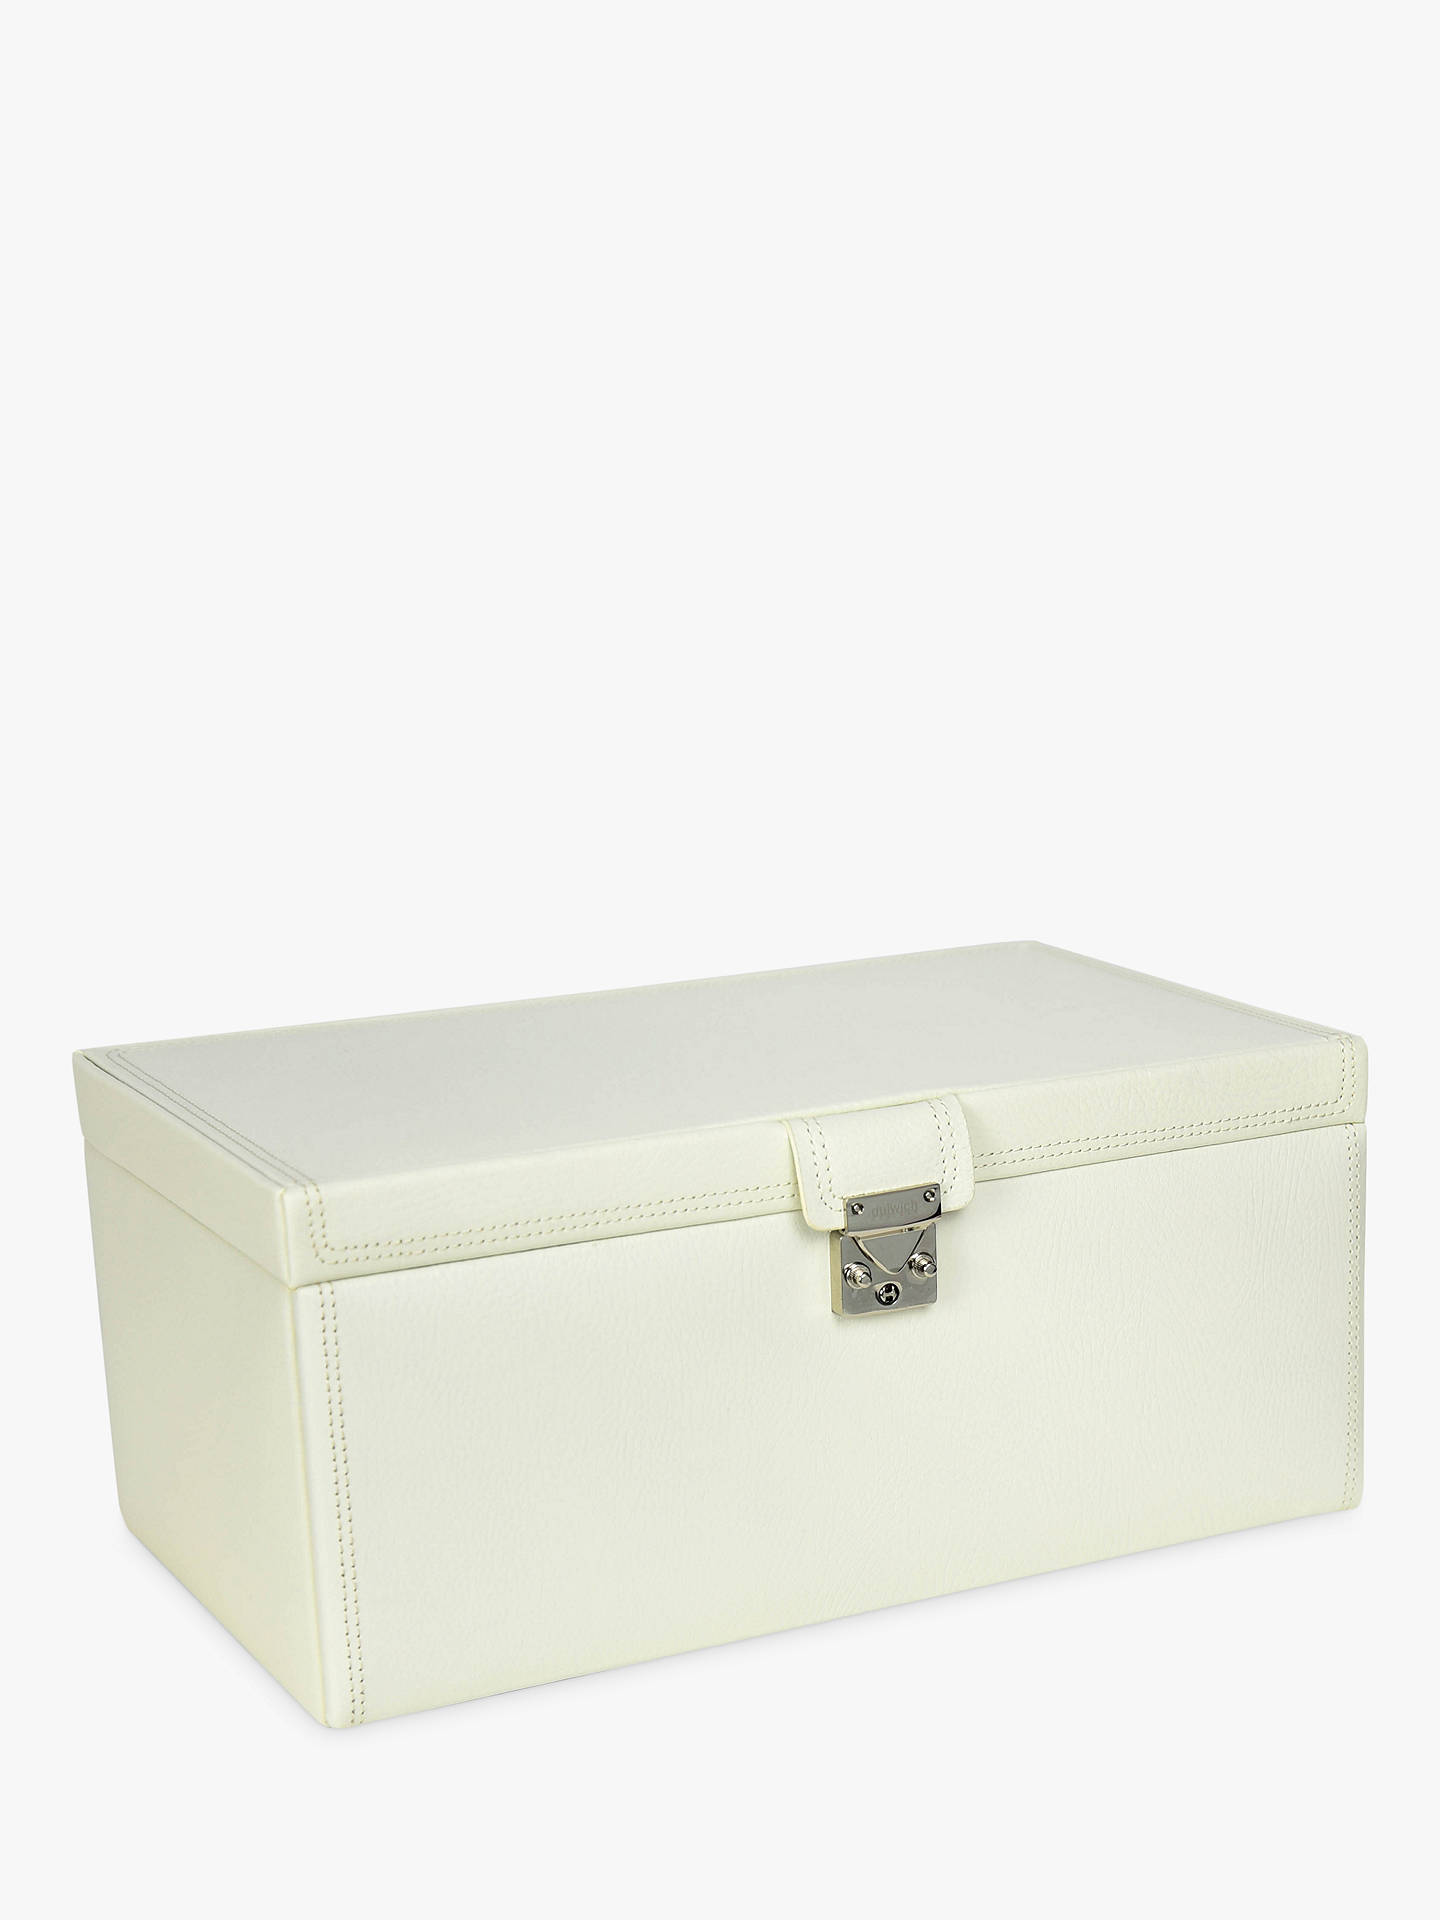 Dulwich designs extra large leather jewellery box in fawn colour